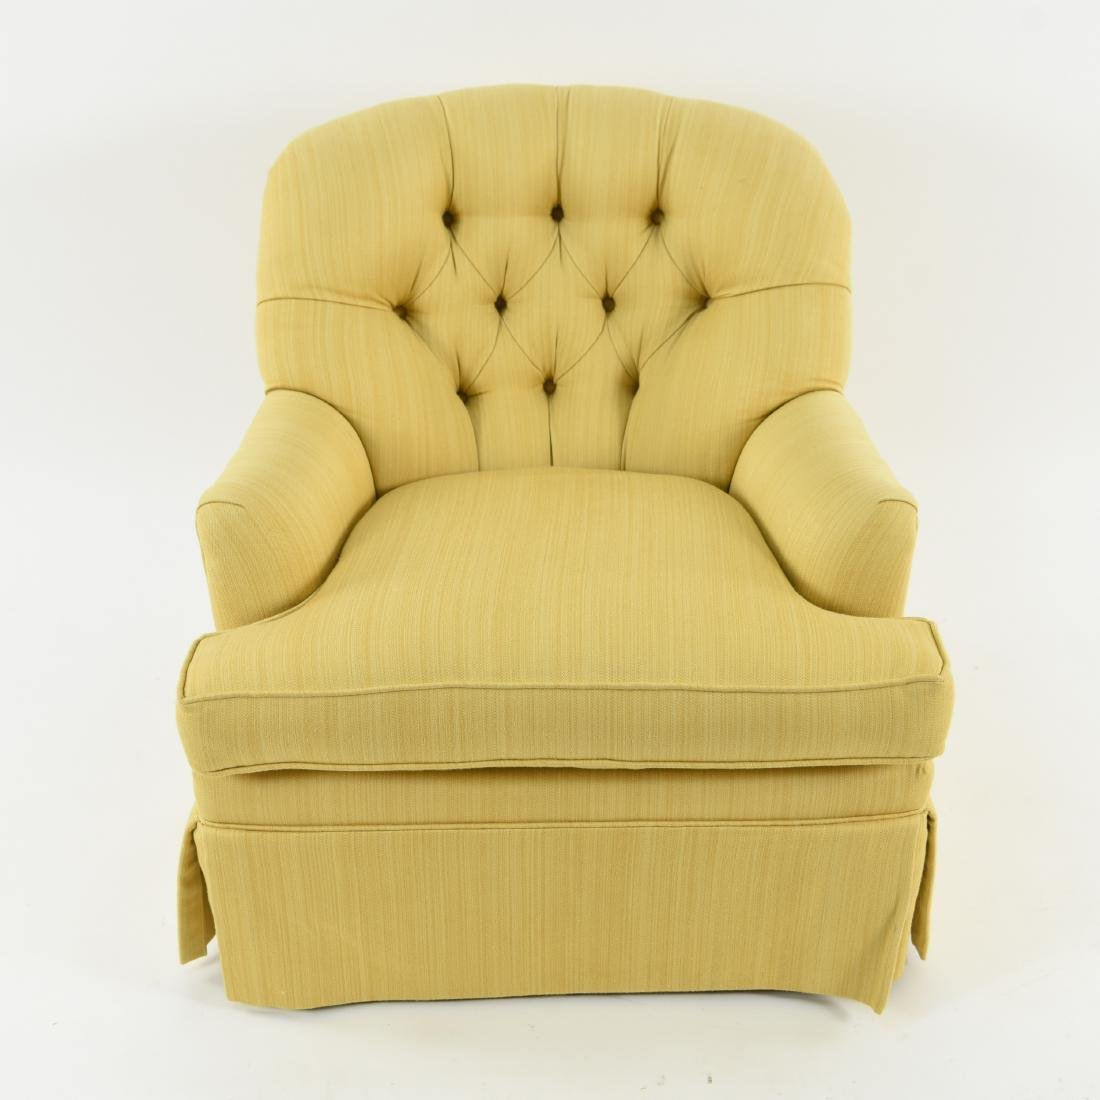 TUFTED YELLOW CLUB CHAIR - 2